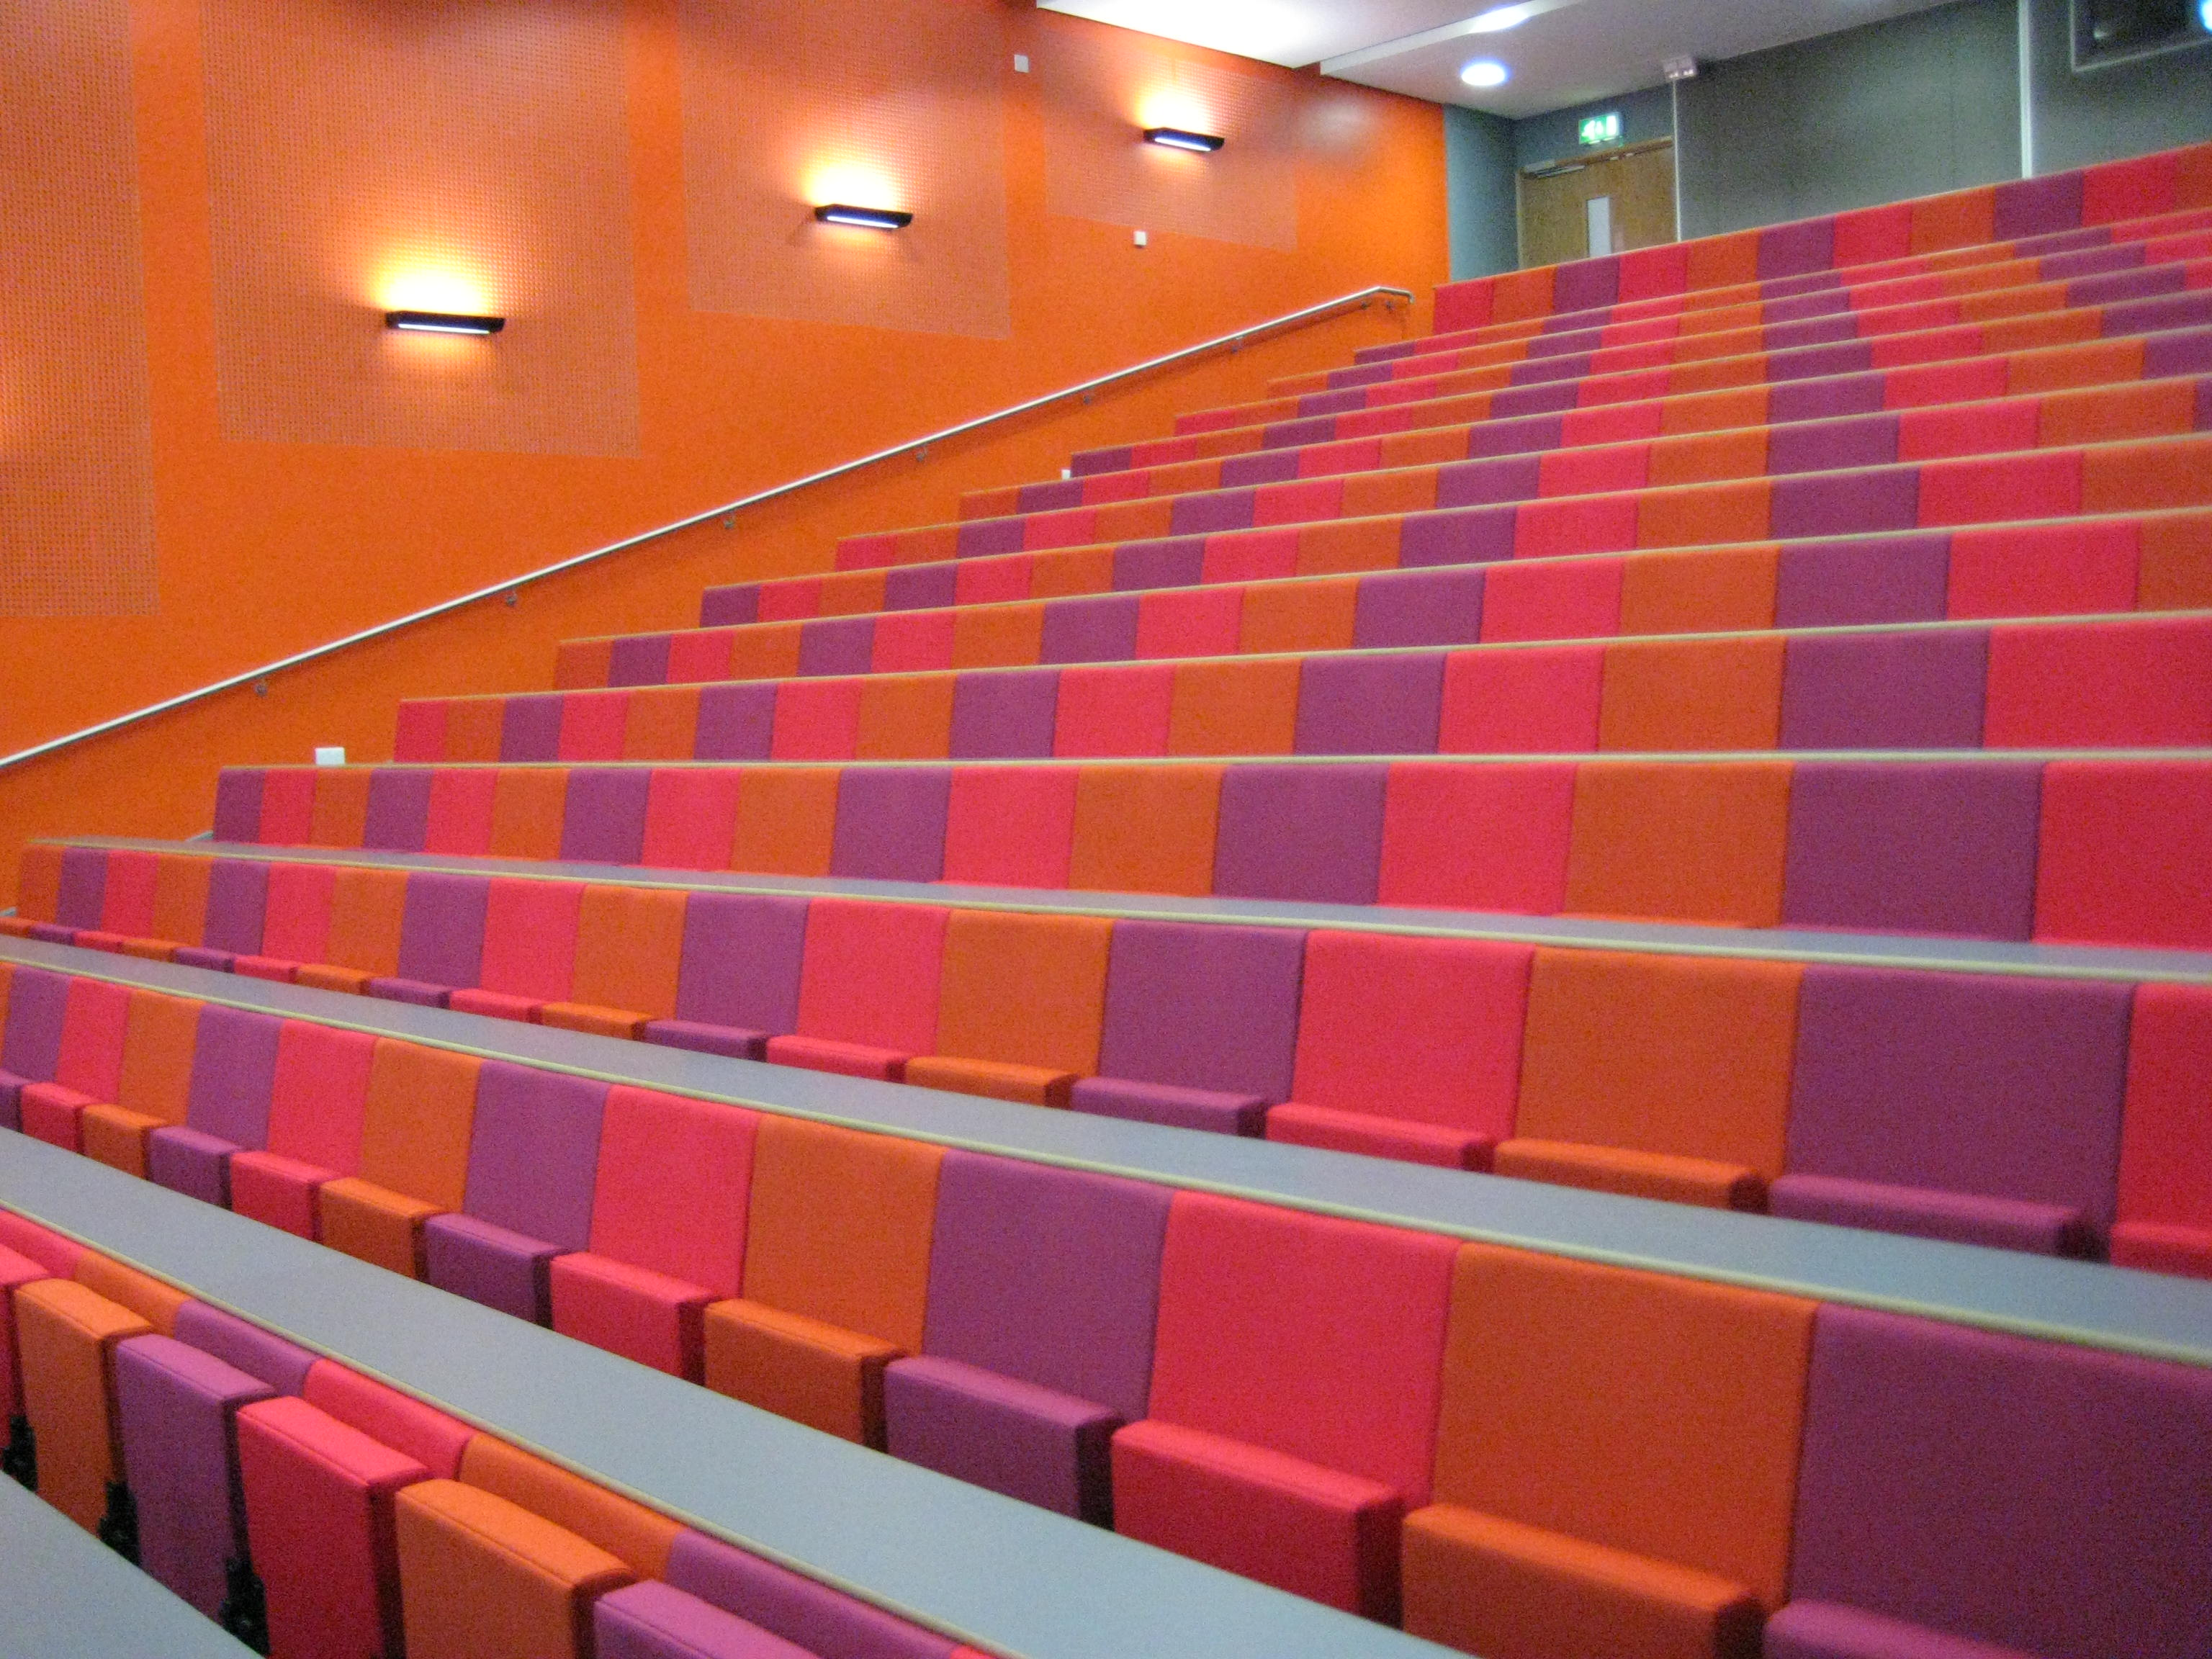 Rows of pink, orange and purple lecture chairs in a large university lecture theatre